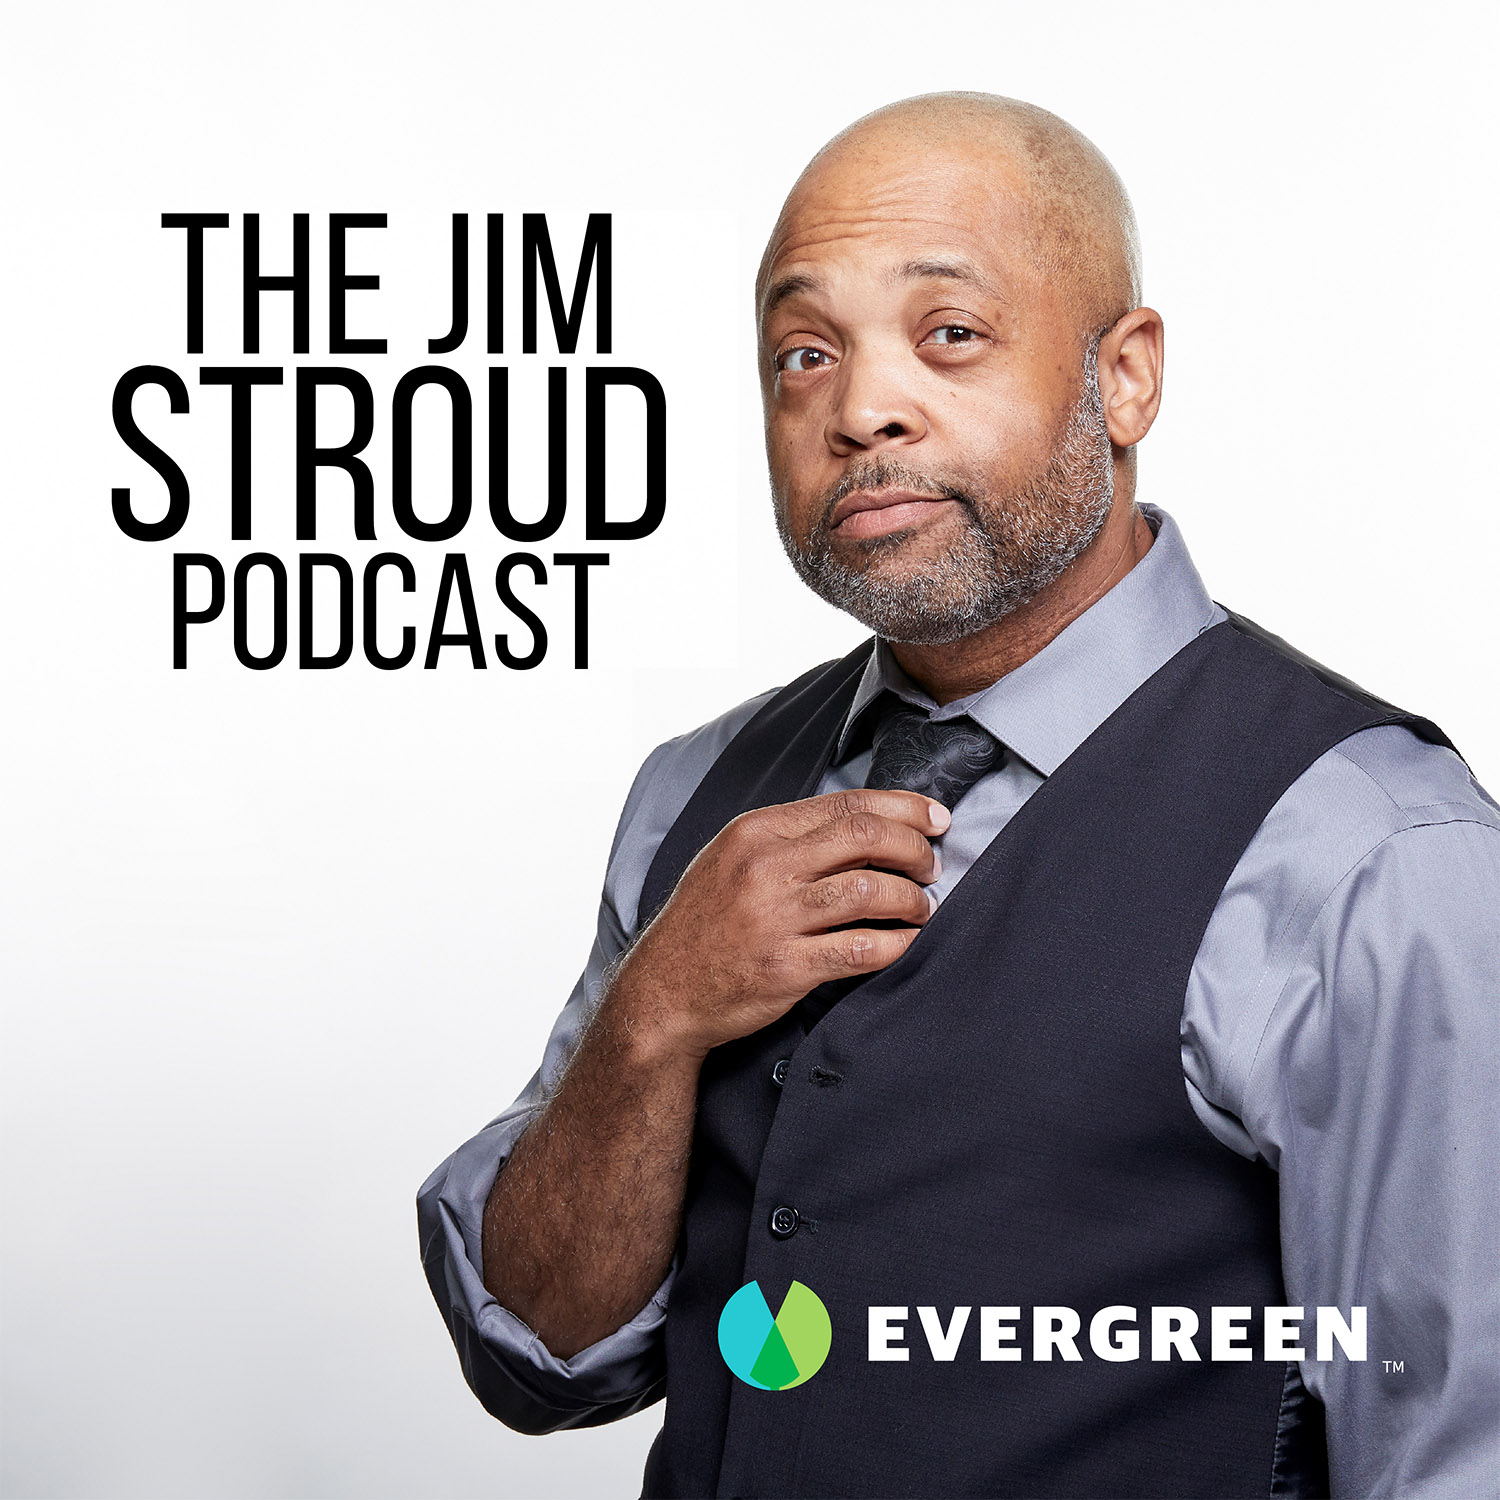 The Jim Stroud Podcast show art